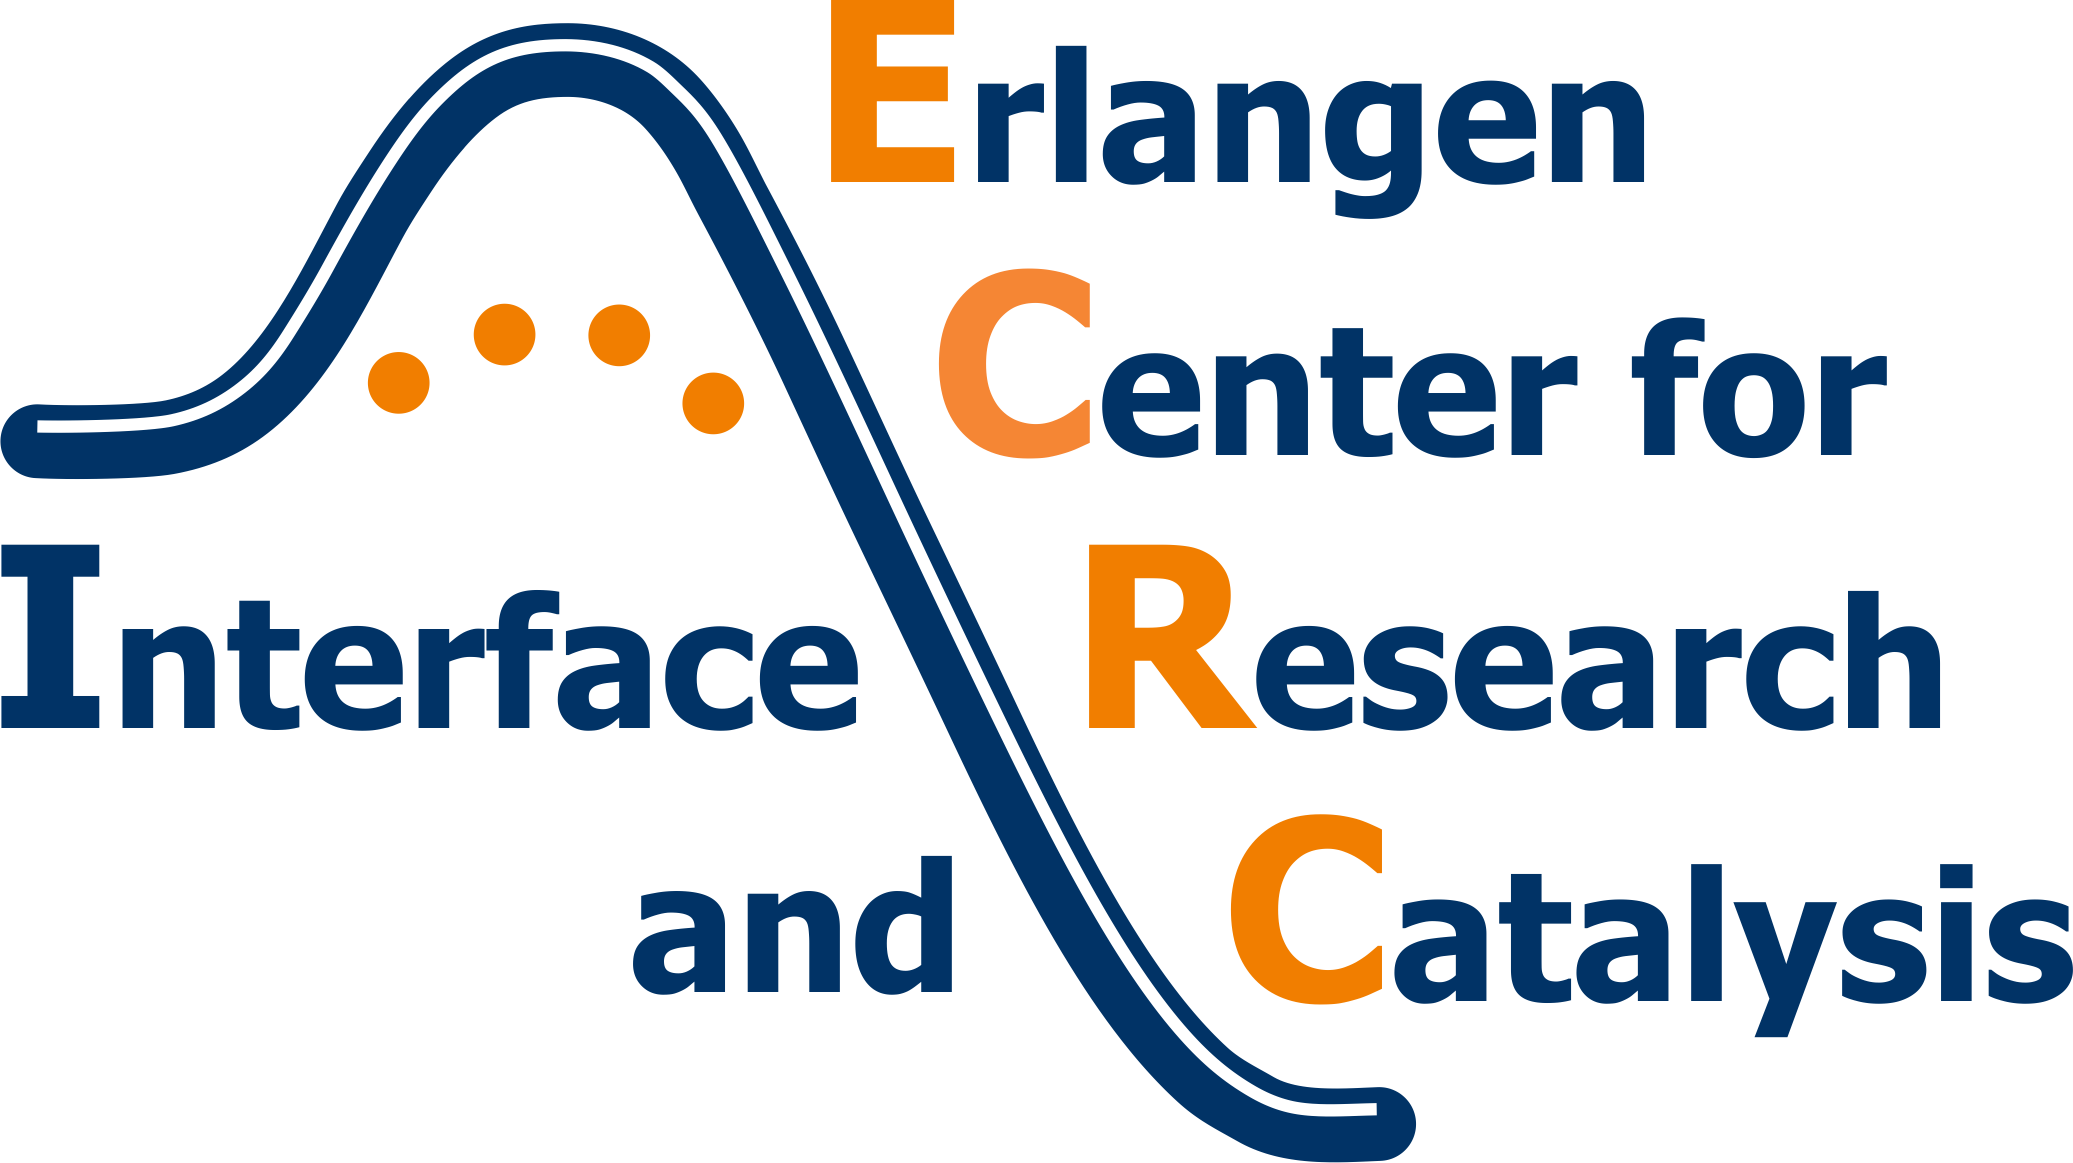 Erlangen Center for Interface Research and Catalysis